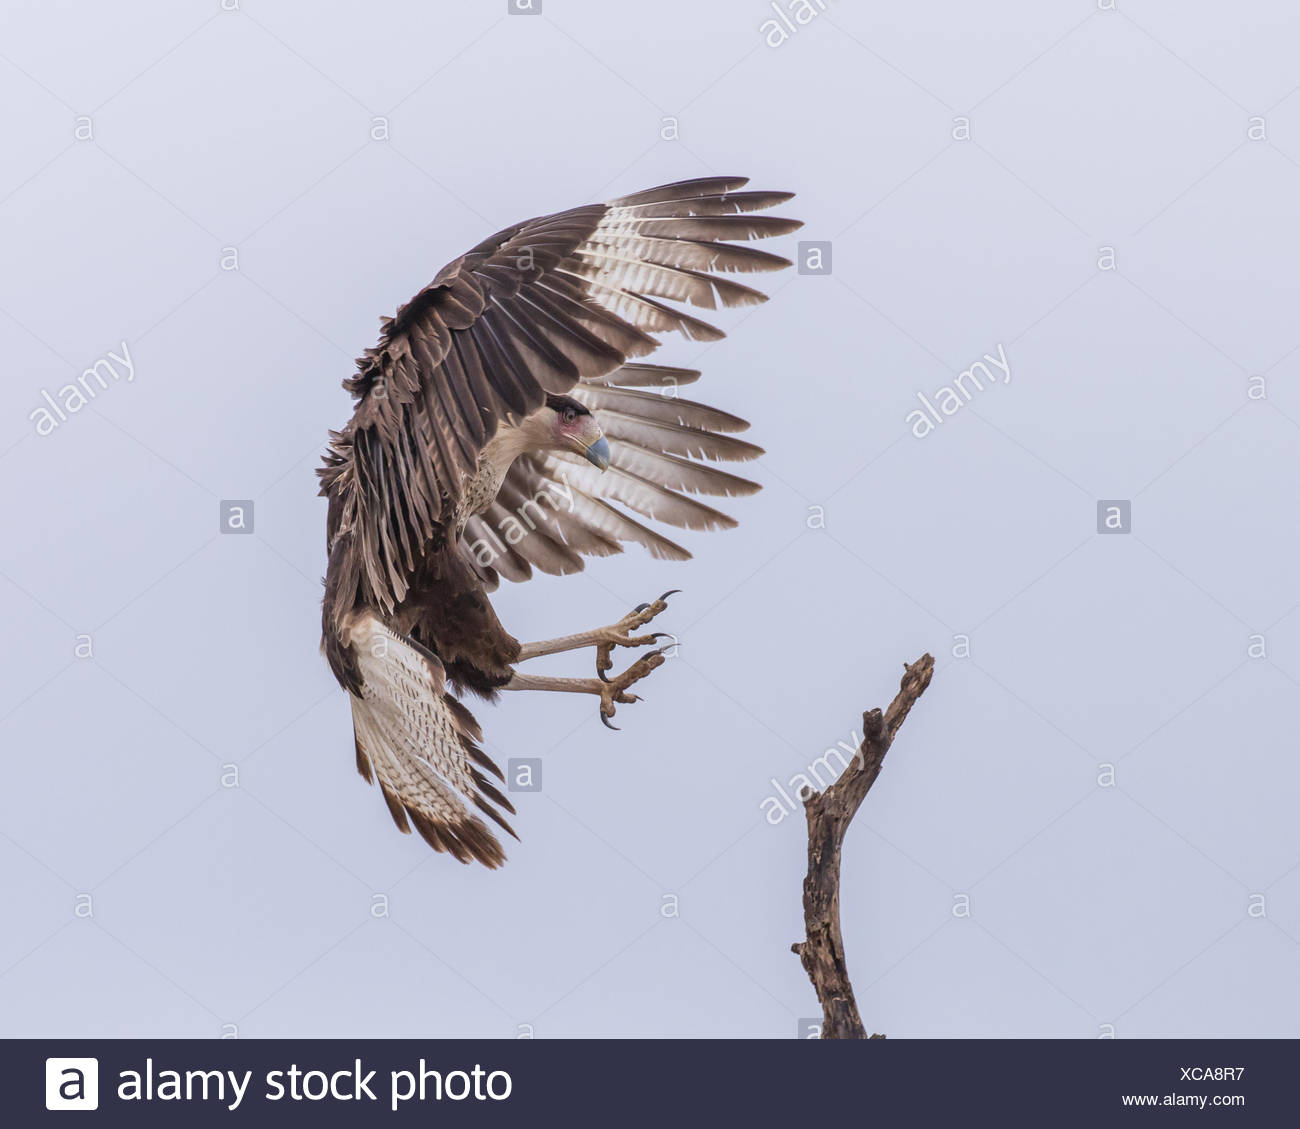 A crested caracara, also known as the Mexican eagle, with wings in a braking position and talons extended prepares to land on a branch. - Stock Image